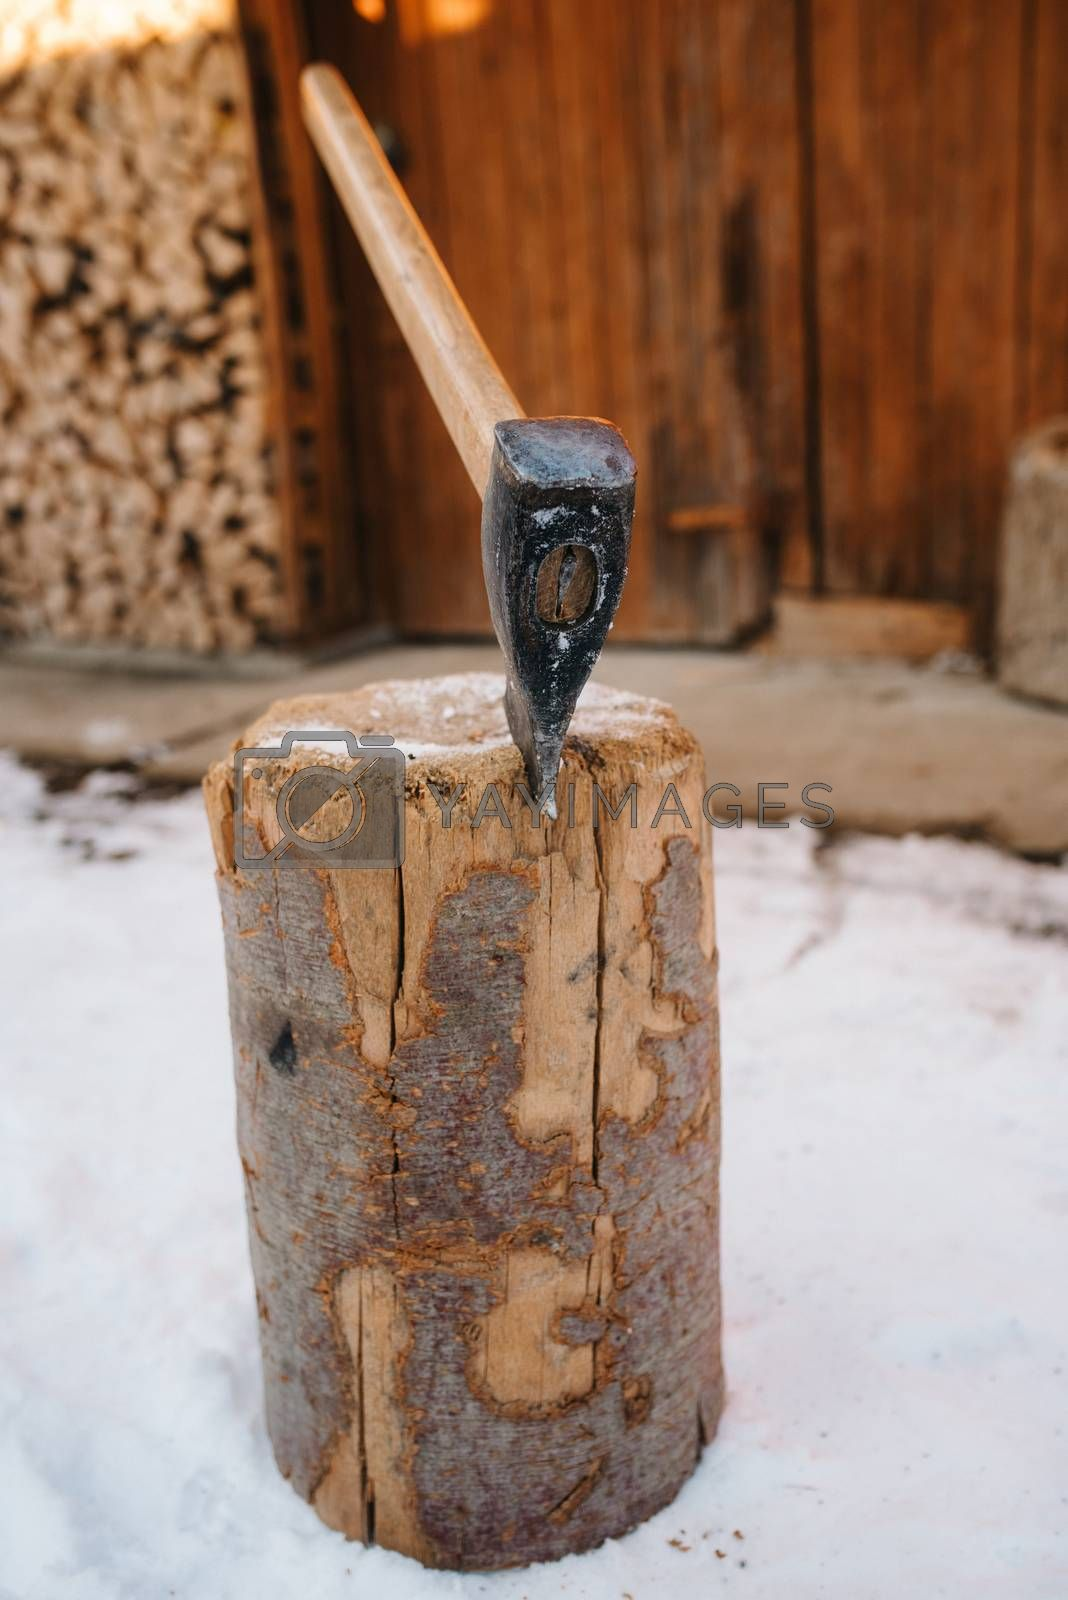 an ax sticking out in a wooden deck in a snowy village courtyard